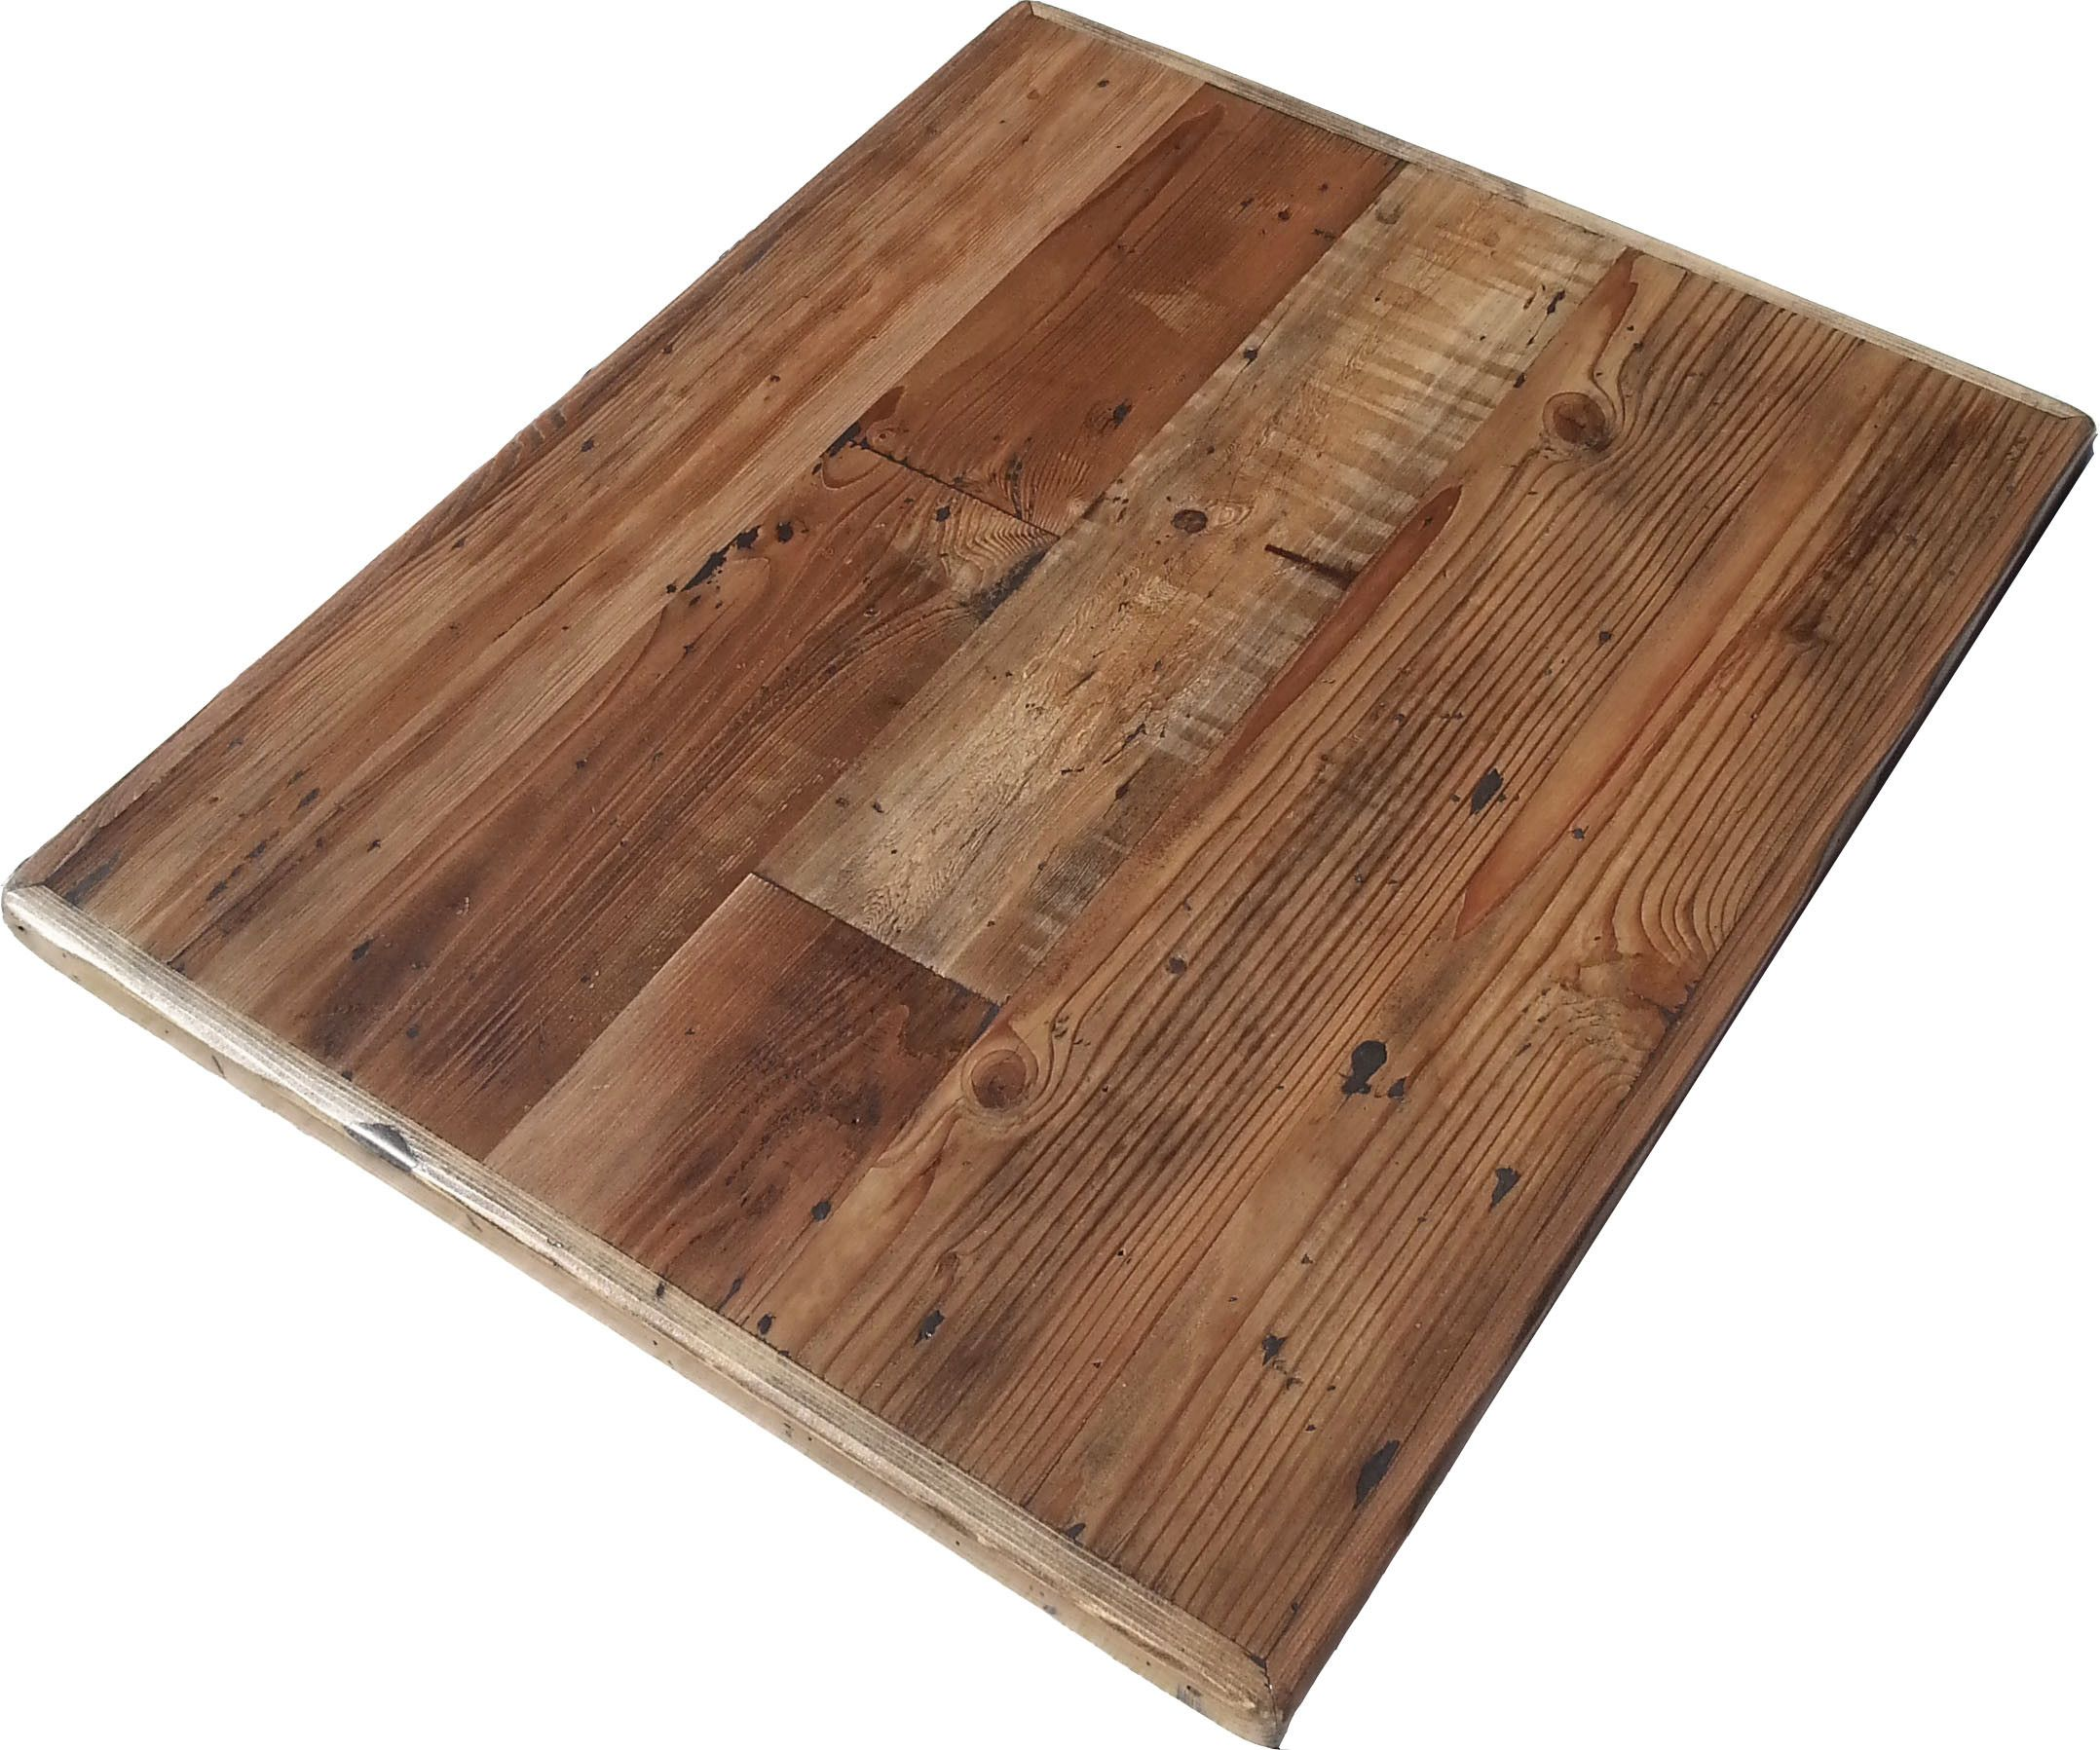 Reclaimed Wood Straight Plank Table Tops Economy Pinterest - Table top for restaurant supply